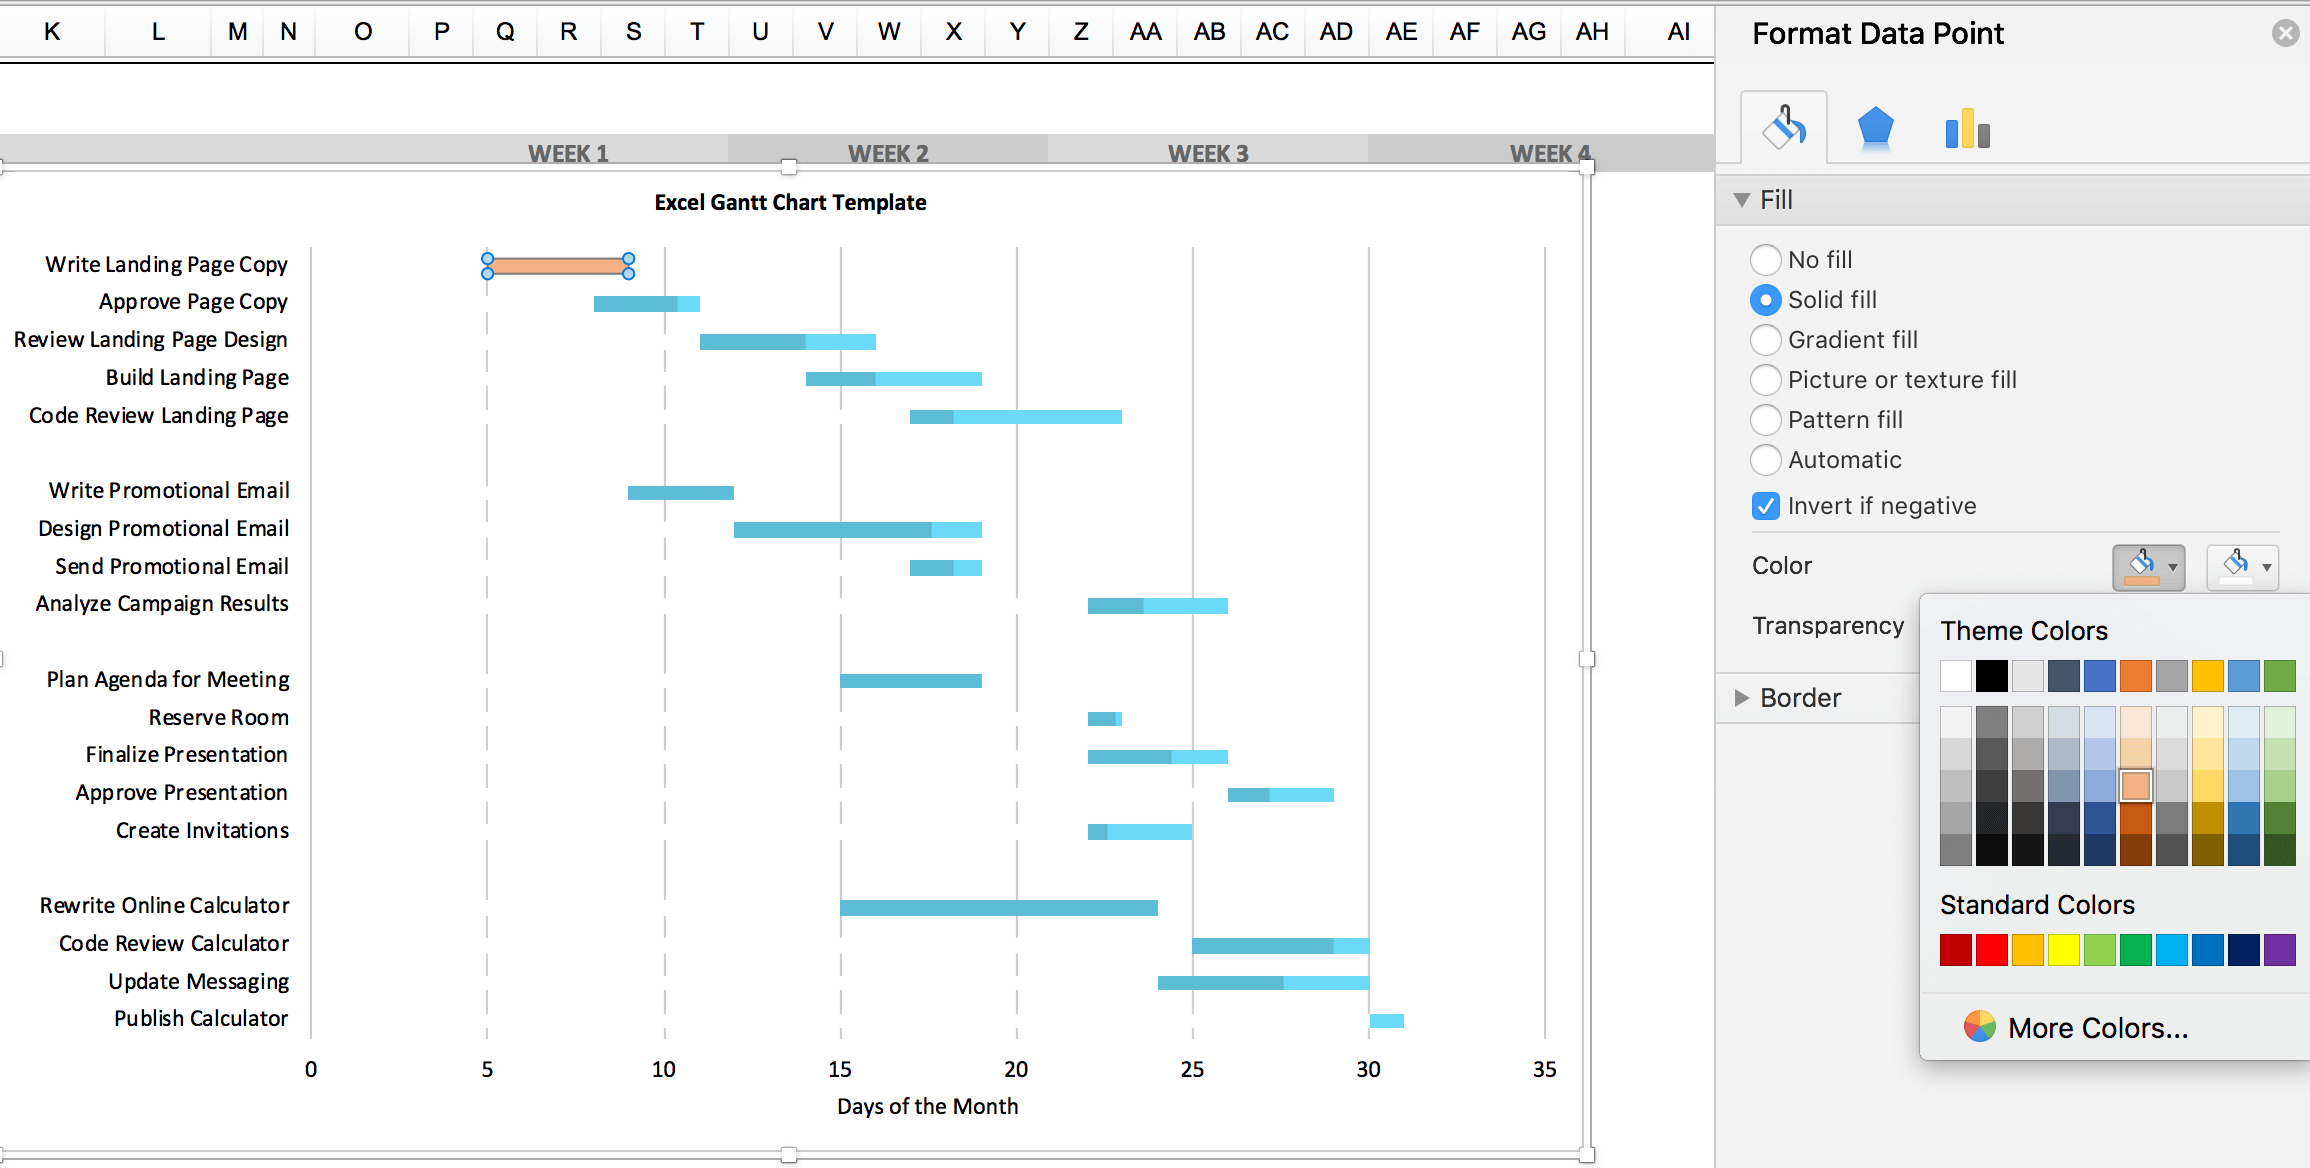 Free Gantt Chart Excel Template: Download Now | Teamgantt Throughout Gantt Chart Templates Excel 2010